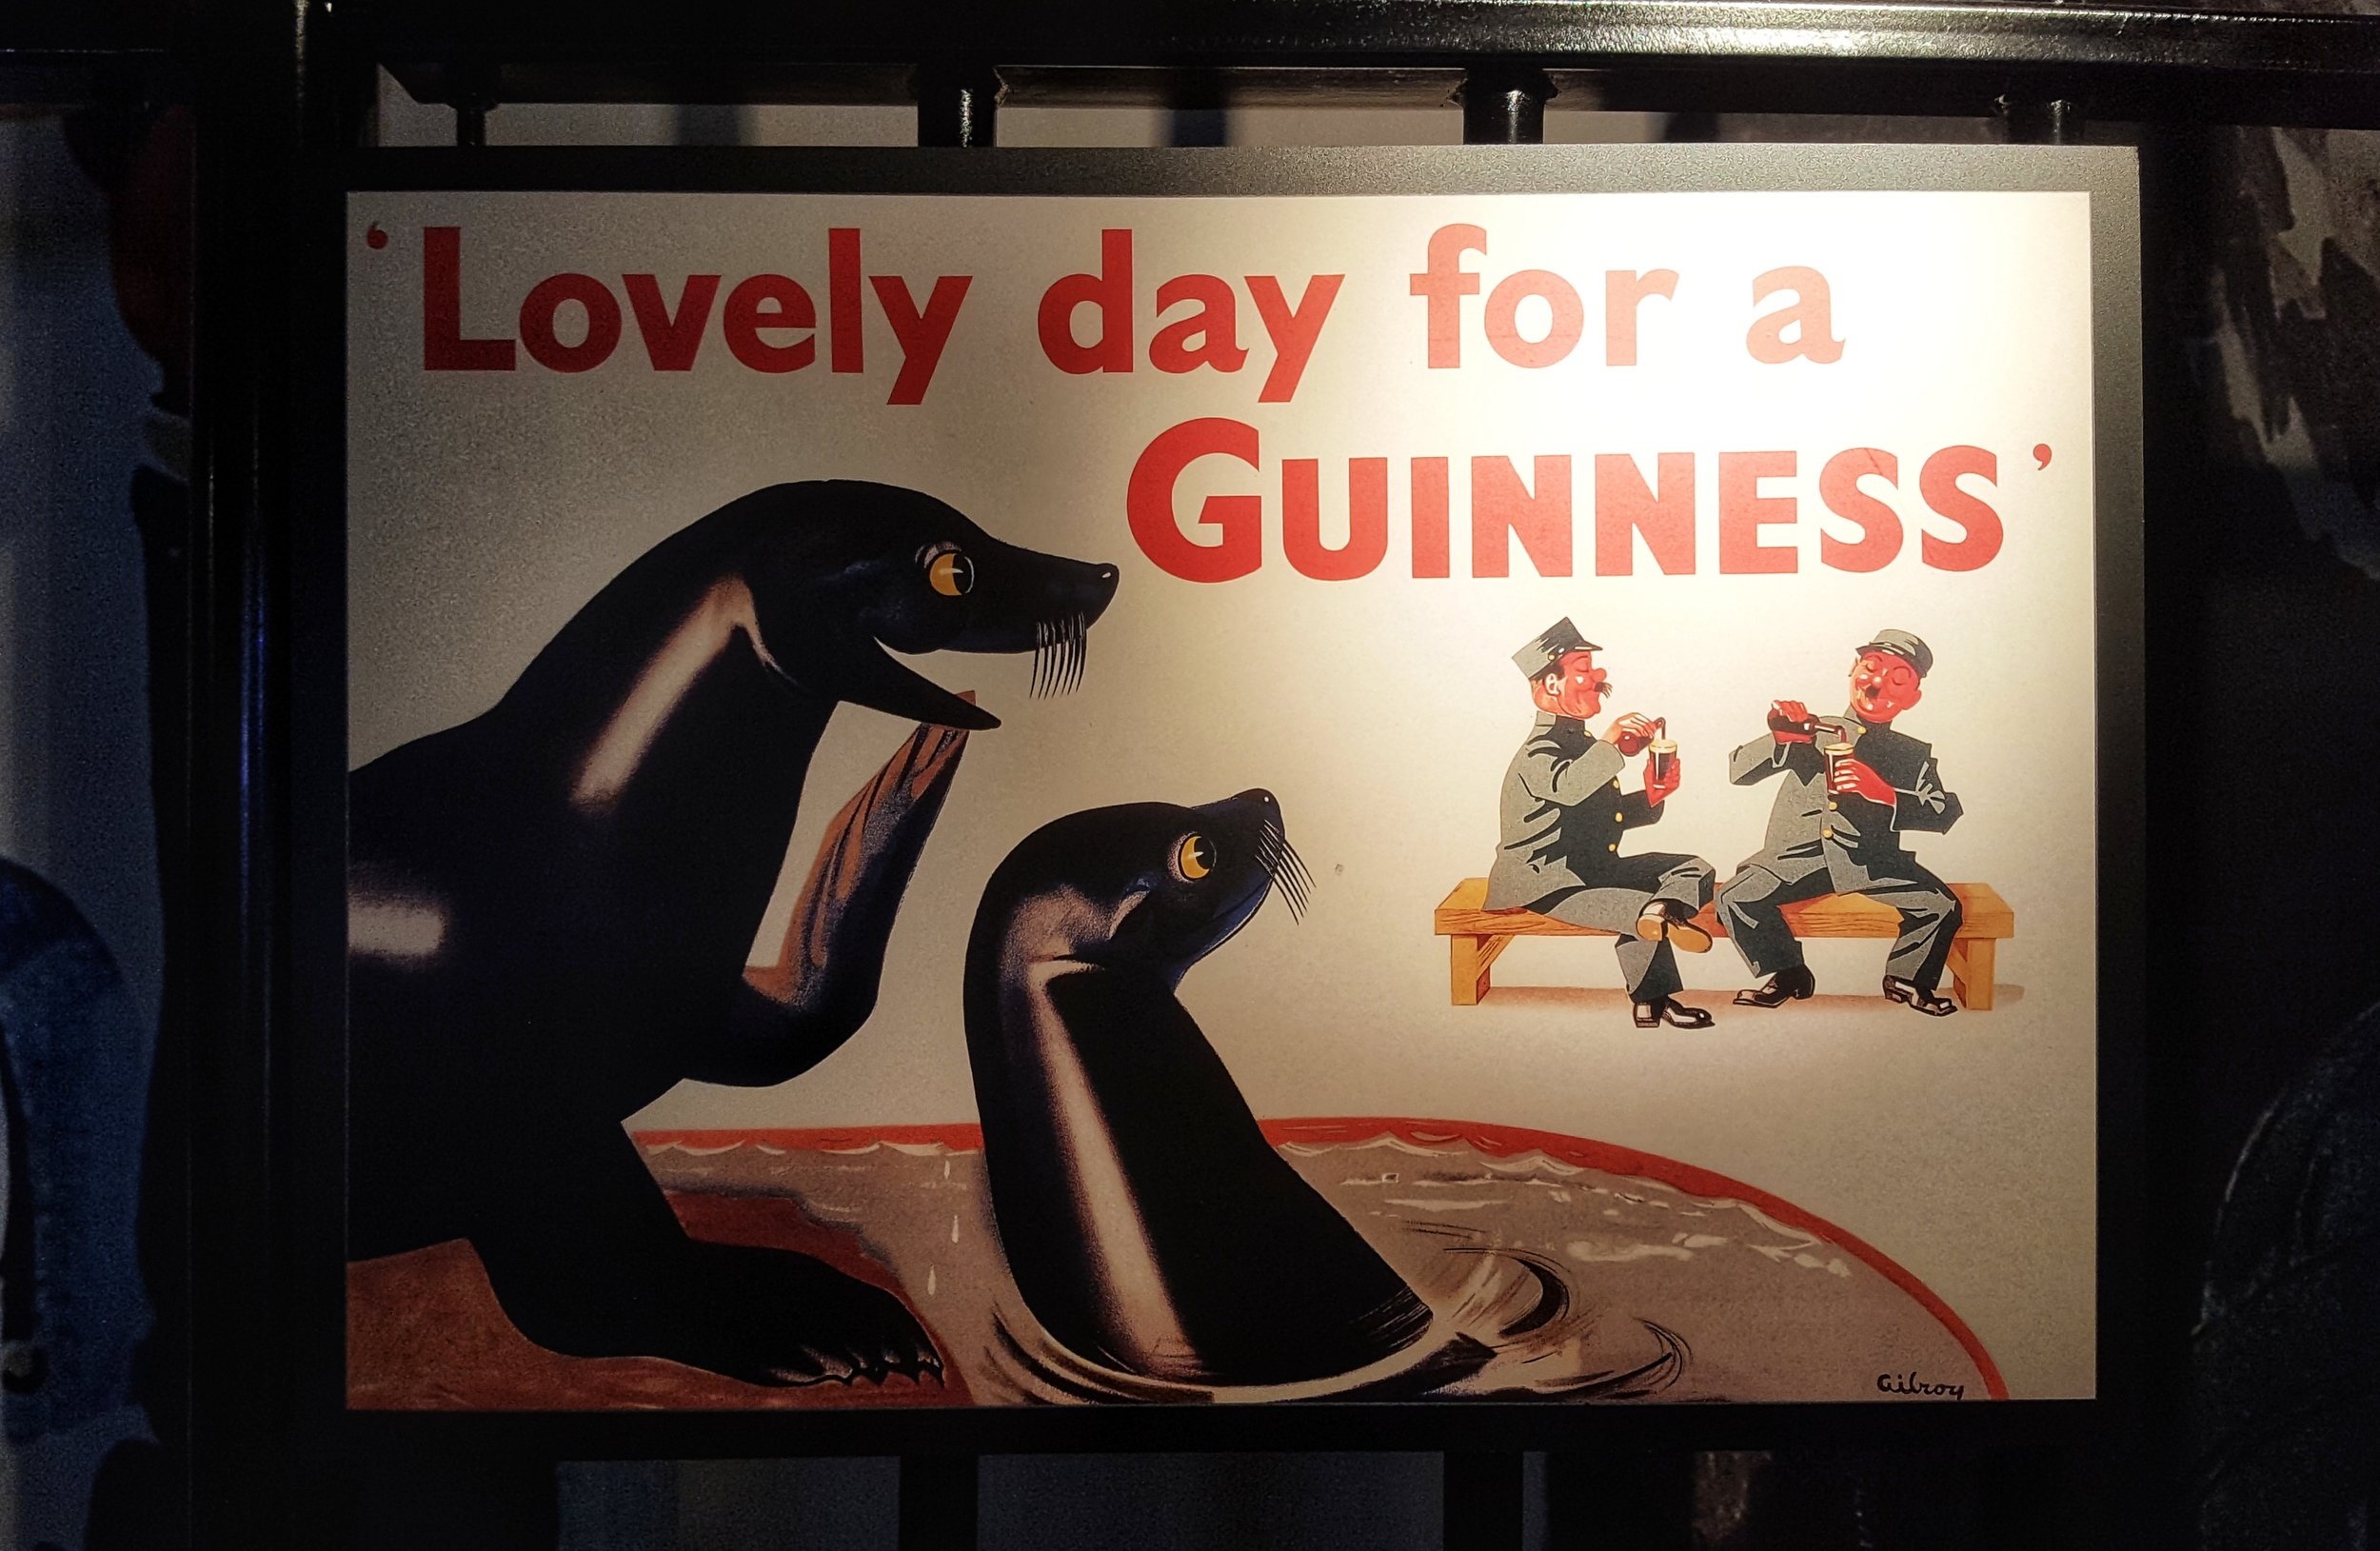 A few Guinness advertisements over the years…